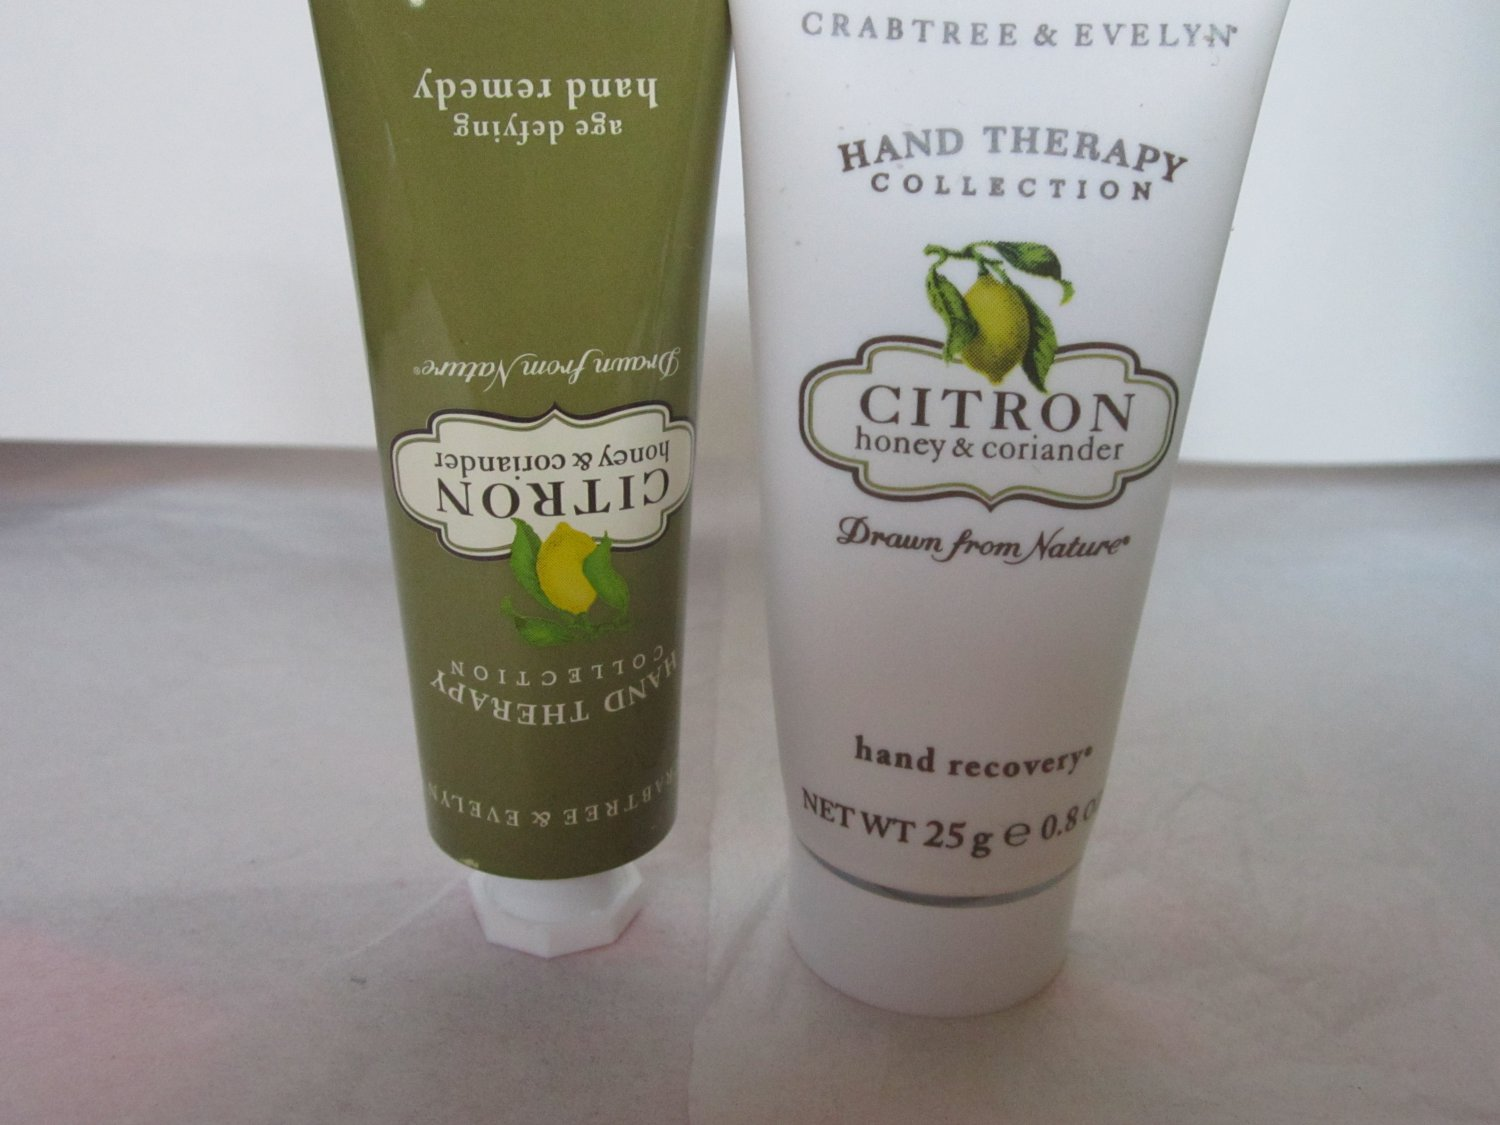 Crabtree Evelyn Hand Recovery + Hand Remedy Citron, Honey  Coriander 0.8 oz. 25g TRAVEL Size